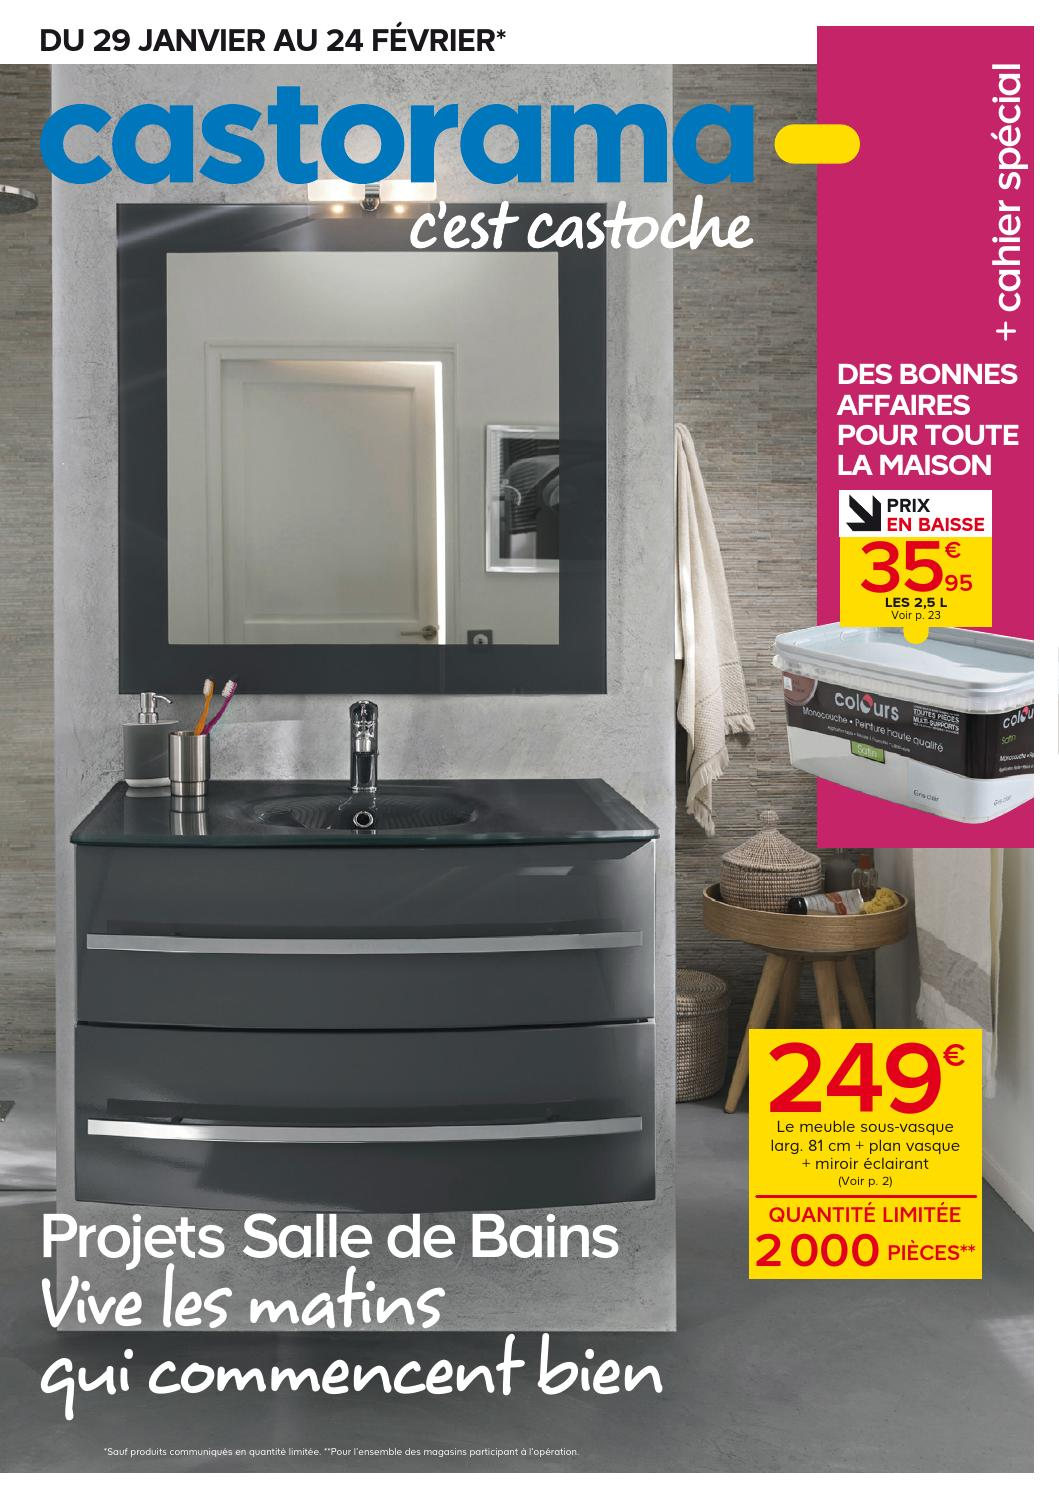 Salle De Bain Castorama Catalogue Catalogue Castorama 29 01 24 02 2014 By Joe Monroe Issuu